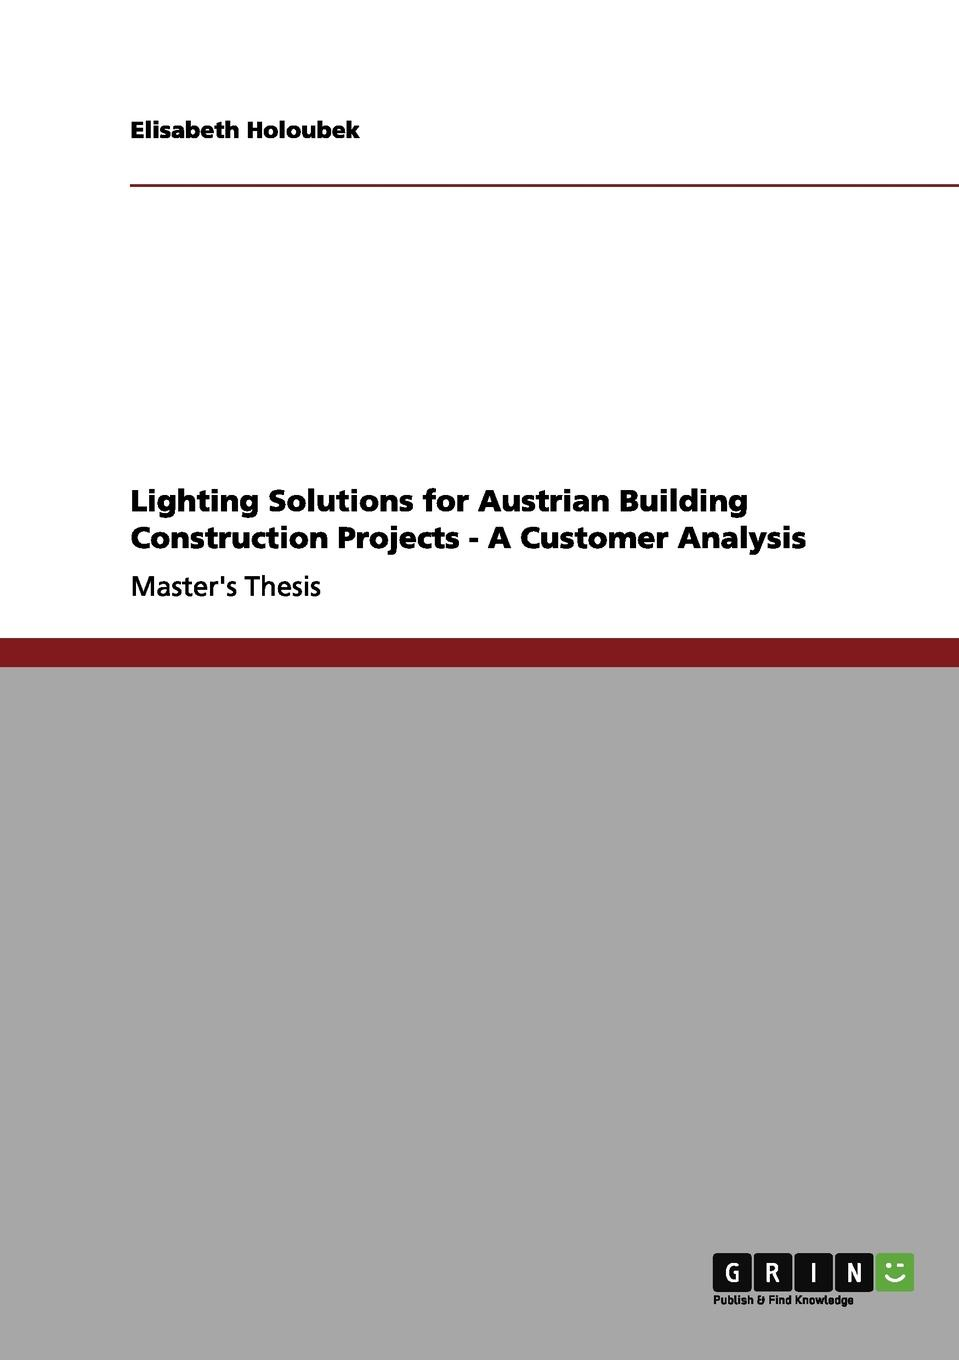 Elisabeth Holoubek Lighting Solutions for Austrian Building Construction Projects - A Customer Analysis halil kiymaz market microstructure in emerging and developed markets price discovery information flows and transaction costs